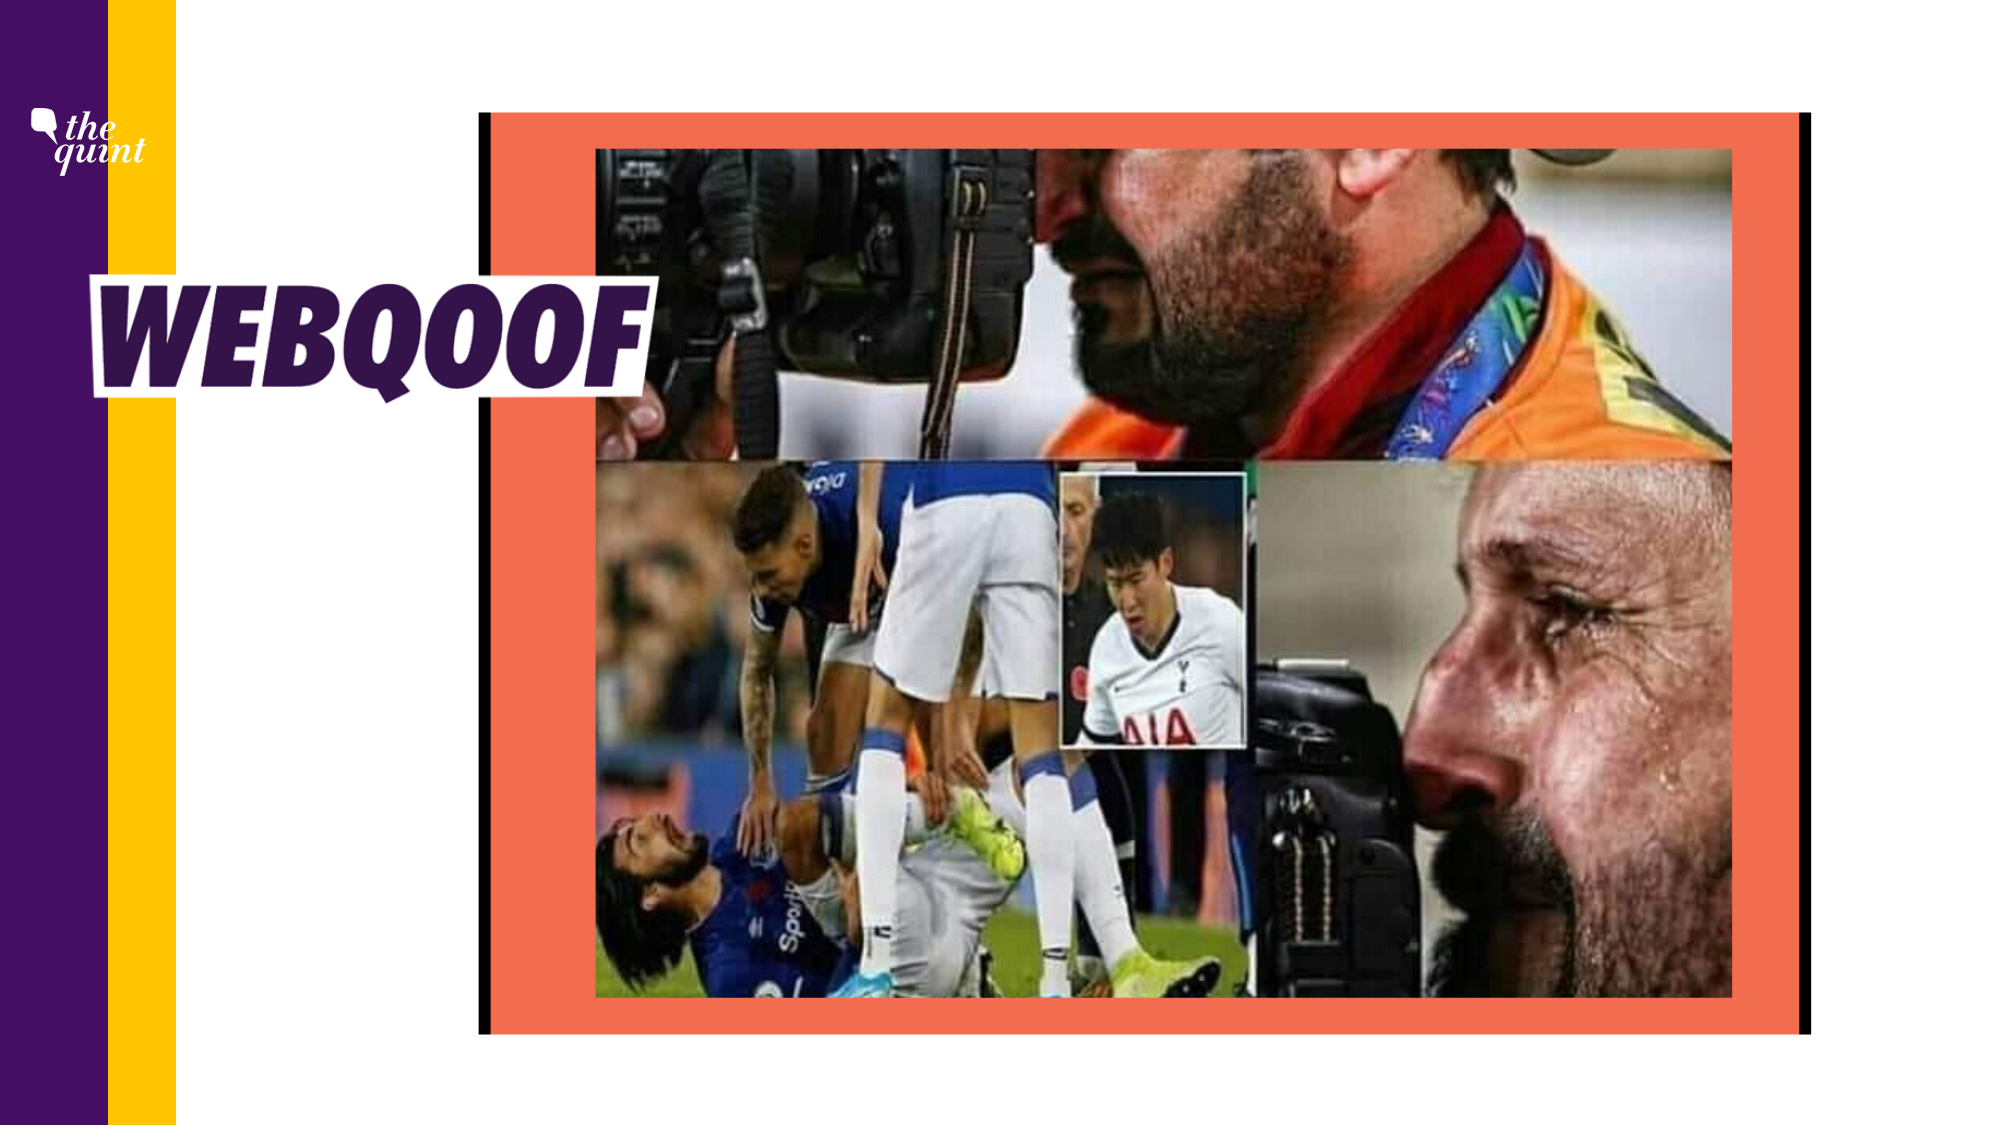 Photographer Cried When Andre Gomes' Ankle Broke? No, Photo is Old